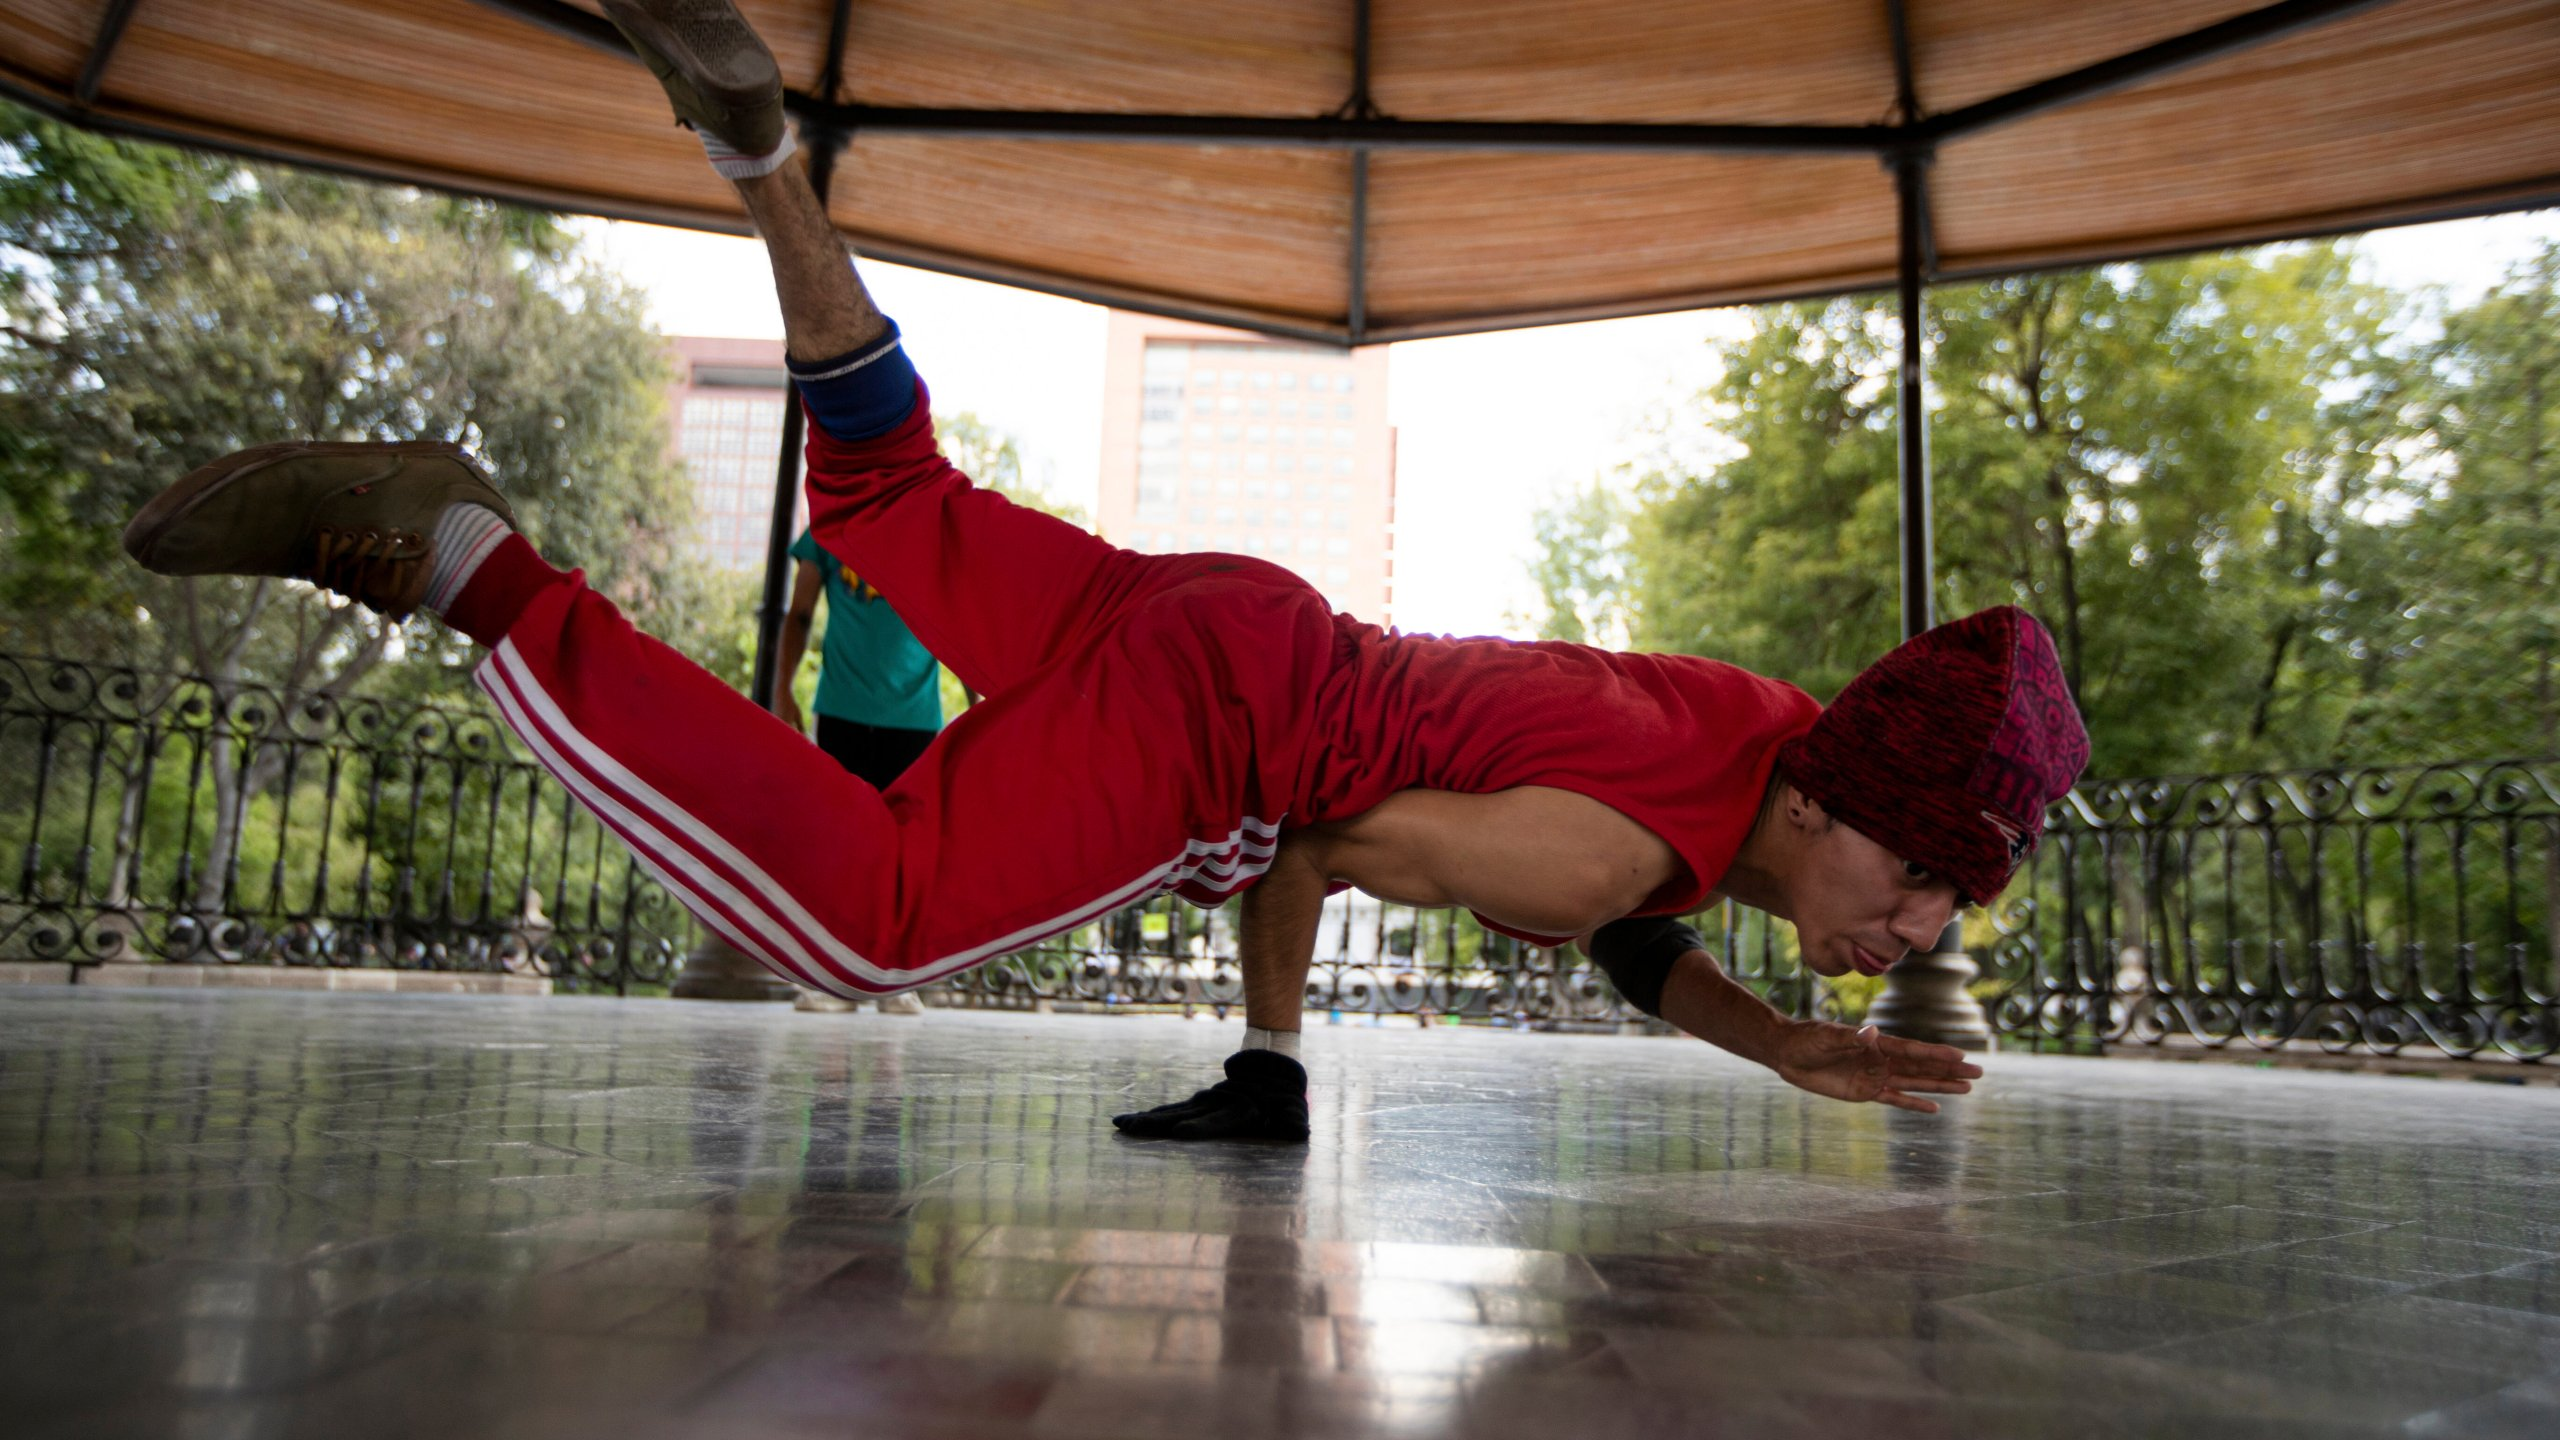 Carlos Cruz, a breakdancer, practices at a kiosk in Alameda park after being closed off to the public for nearly five months due to the new coronavirus pandemic, in Mexico City, Tuesday, Aug. 18, 2020. (AP Photo/Fernando Llano)